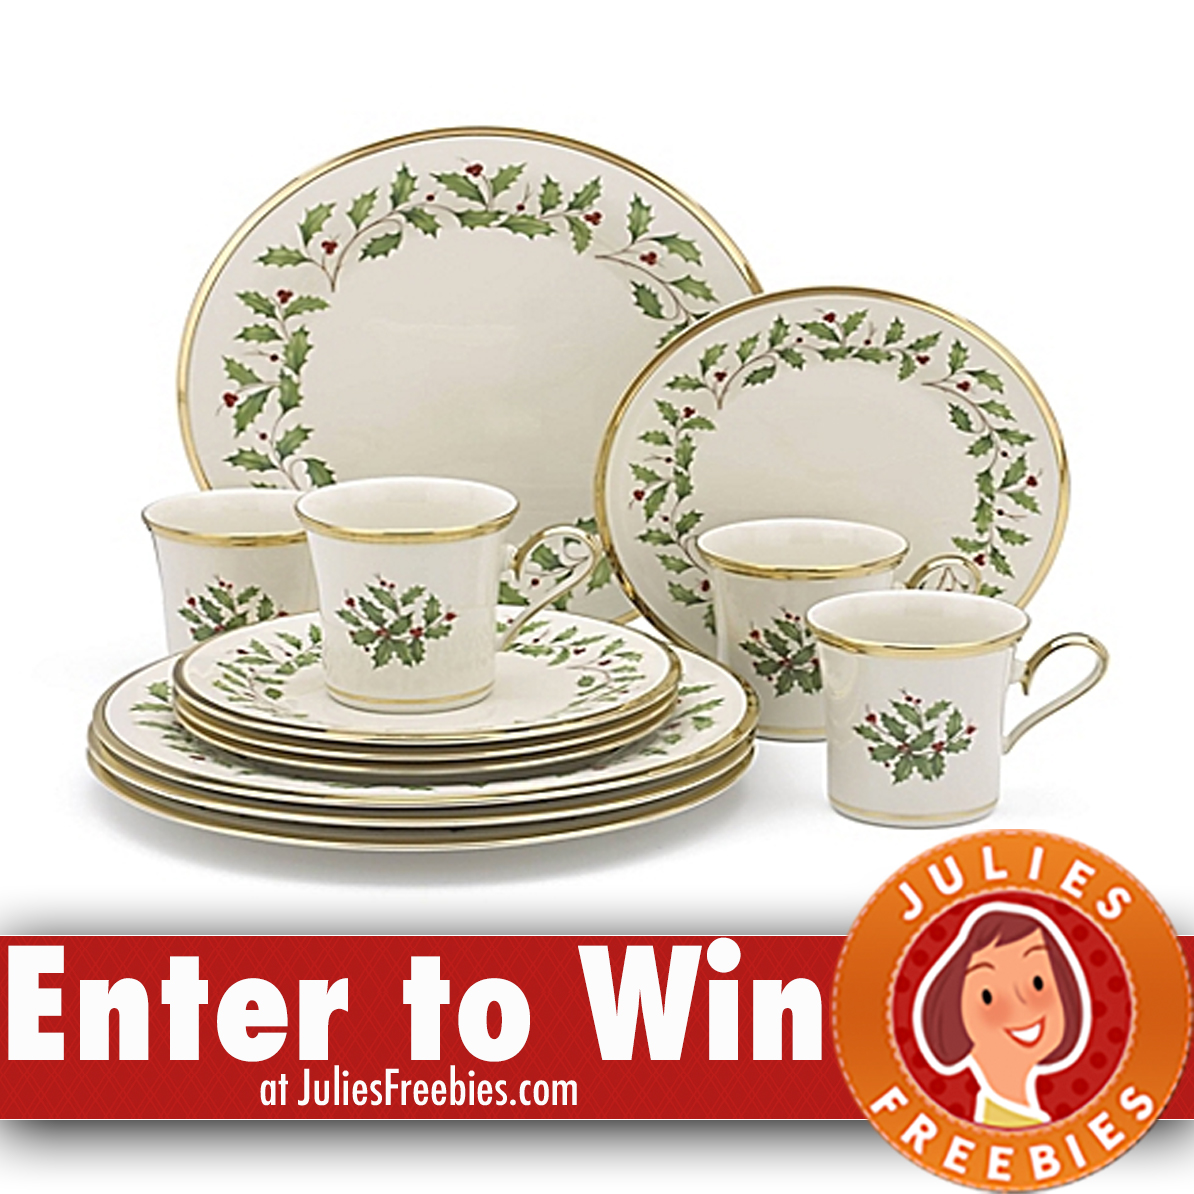 win two 2 lenox holiday 12 u2013 piece dinnerware sets includes eight 8 place settings with 105u2033 dinner plate 8u2033 salad plate and 6u2033 bowl